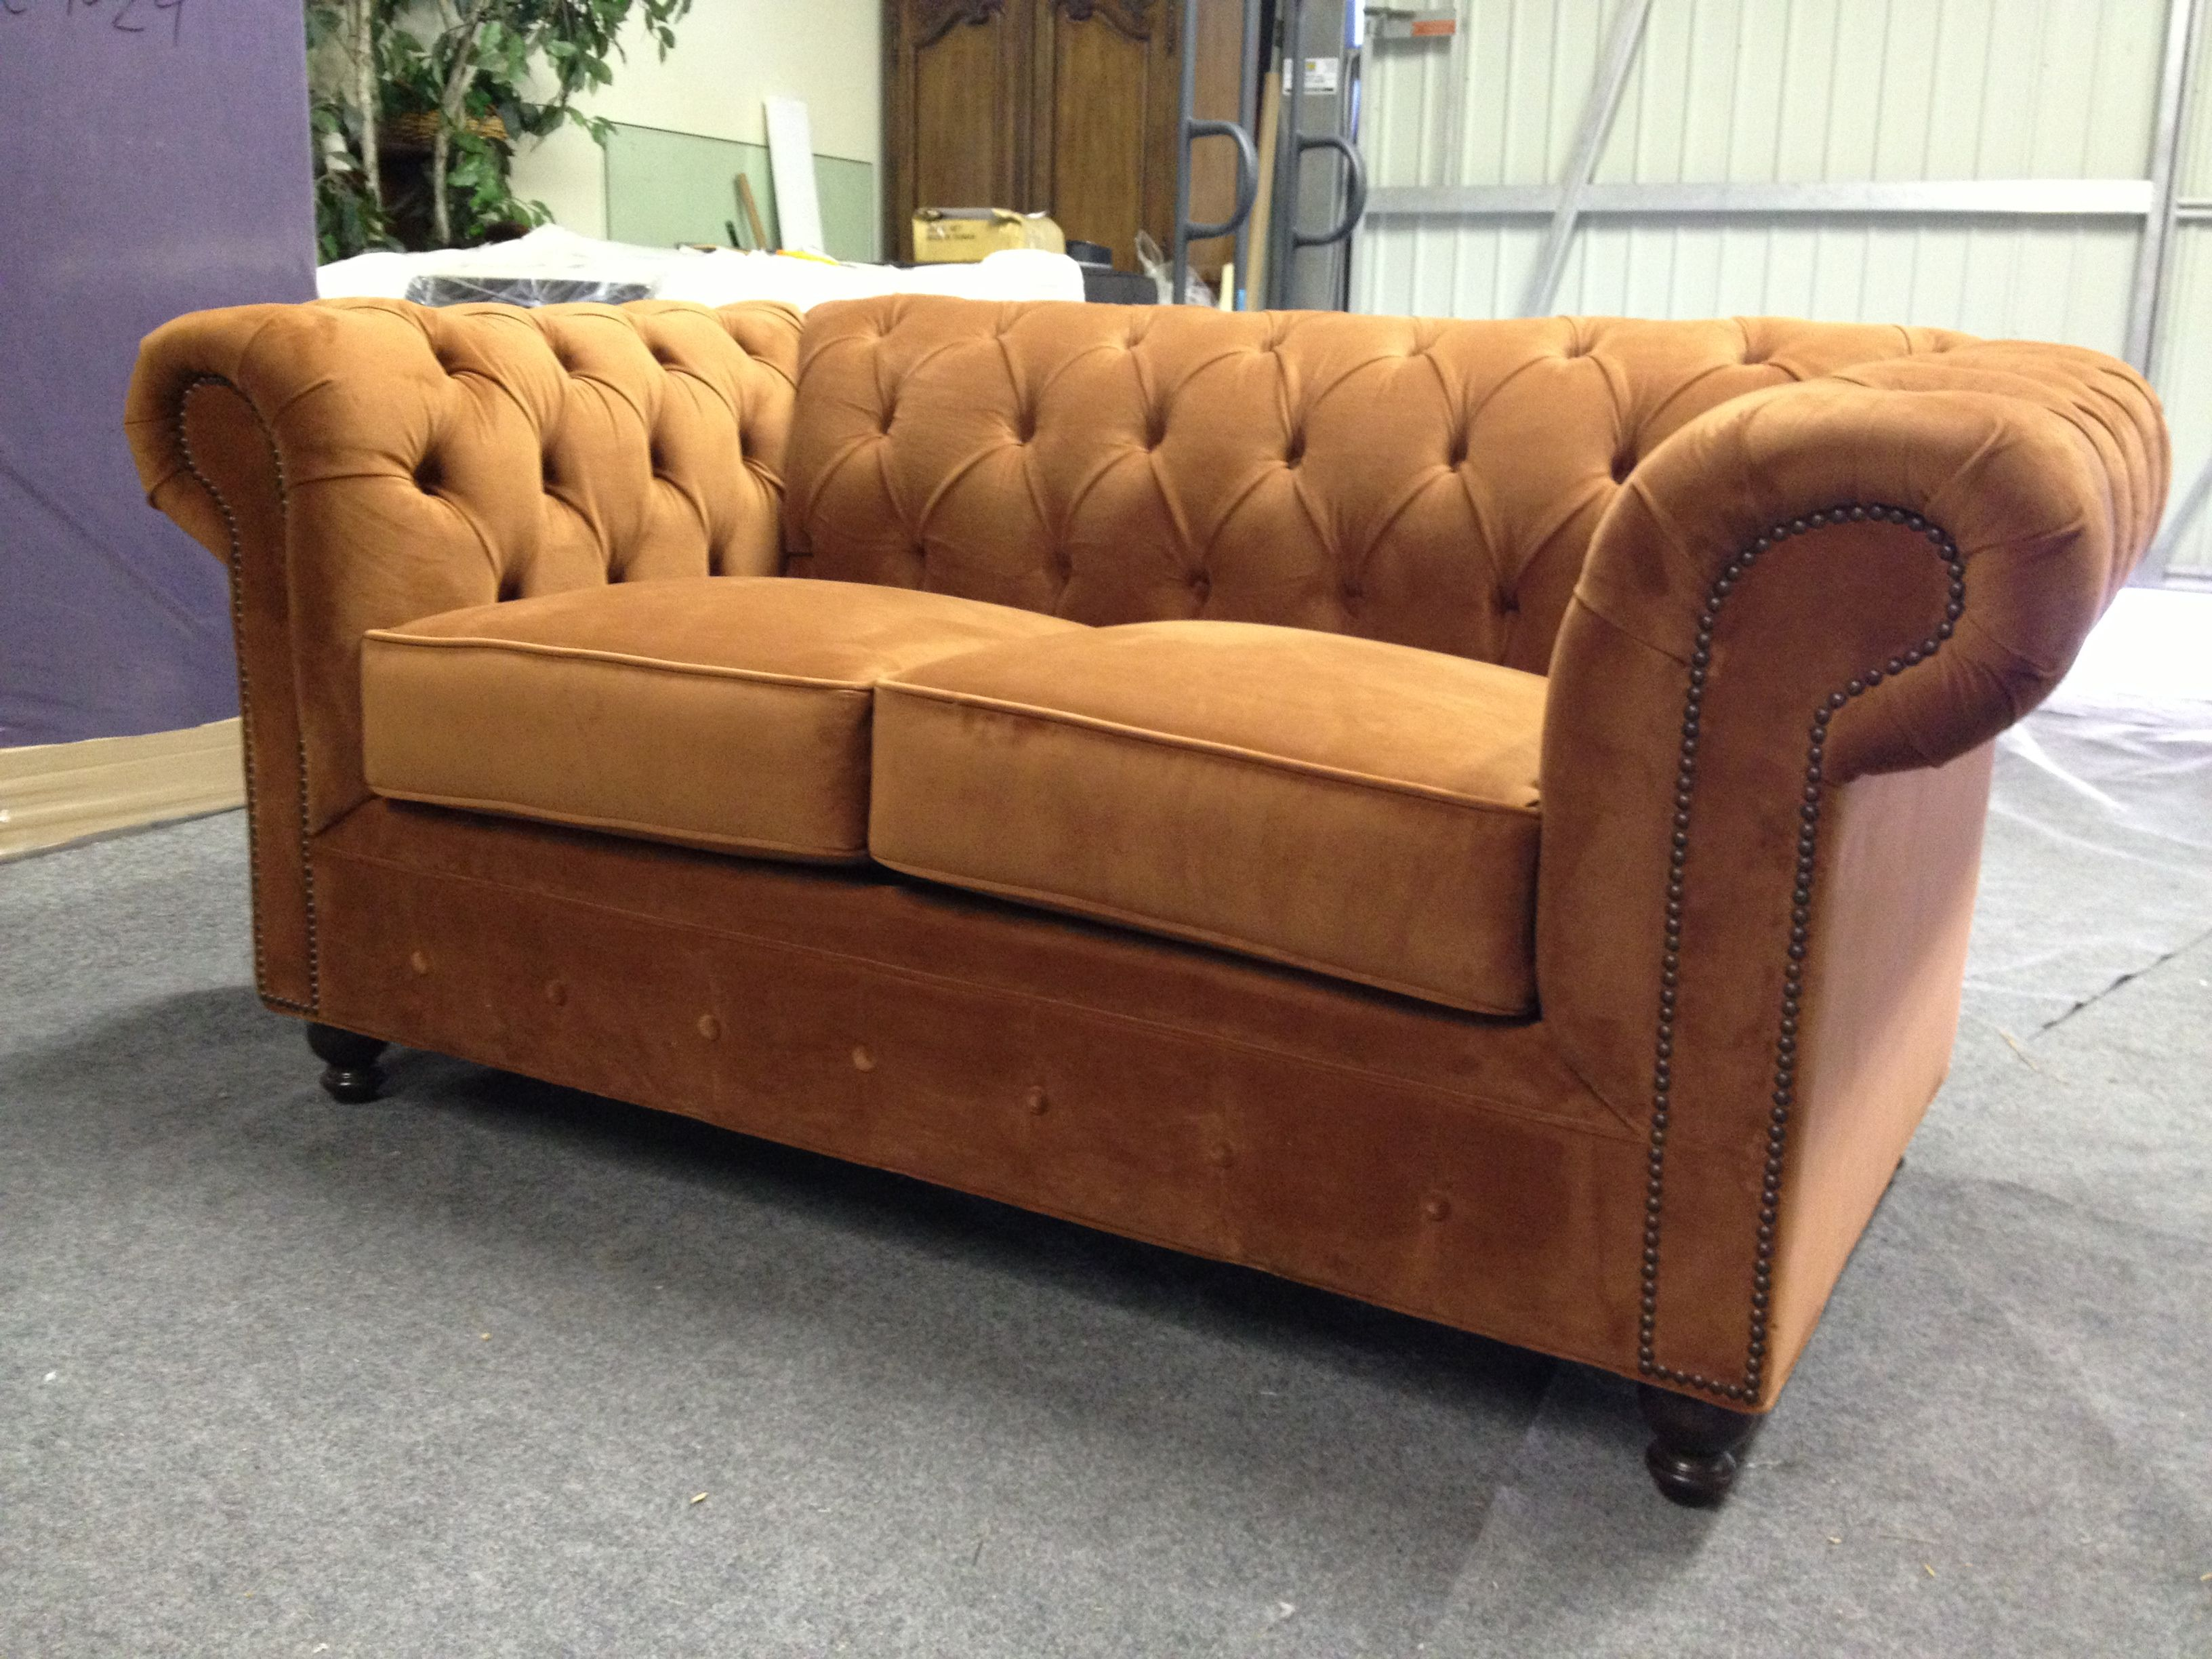 kenzie style ! custom chesterfield sofa or sectional. leather or